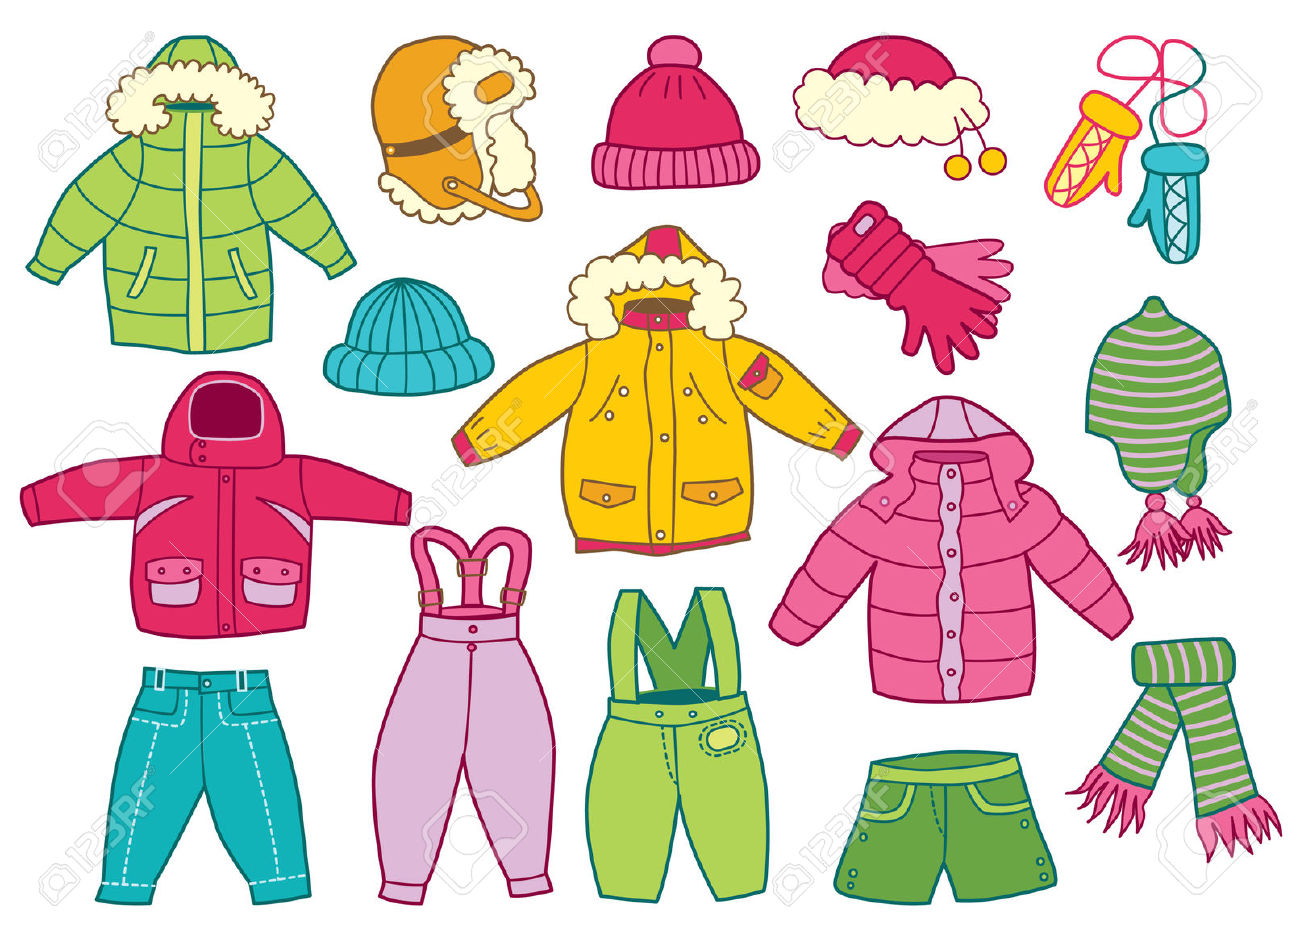 Children clothing clipart vector free Free Kids Shirt Clipart, Download Free Clip Art, Free Clip Art on ... vector free